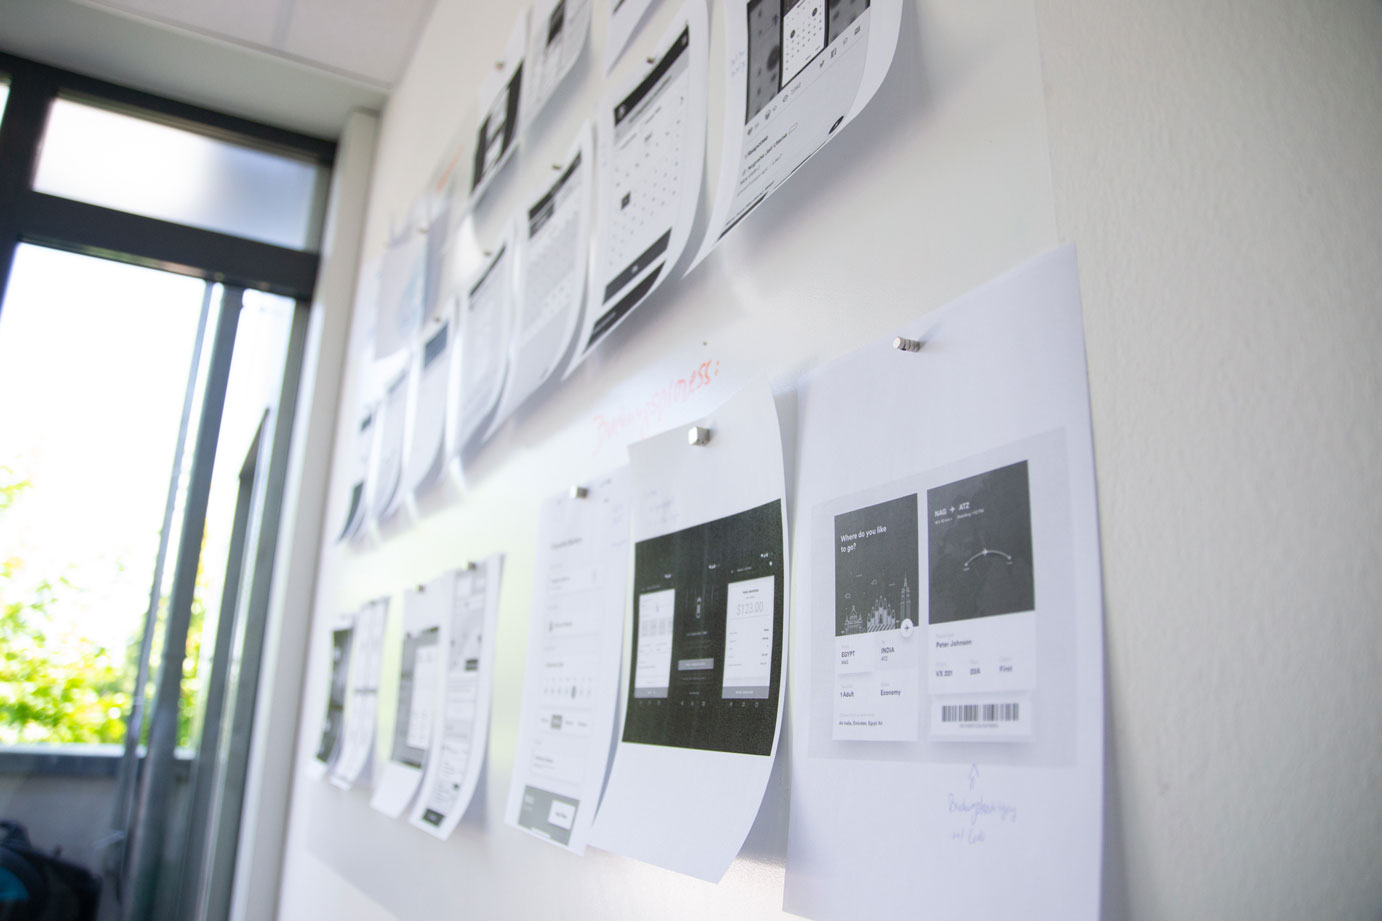 Business Process documents on a wall